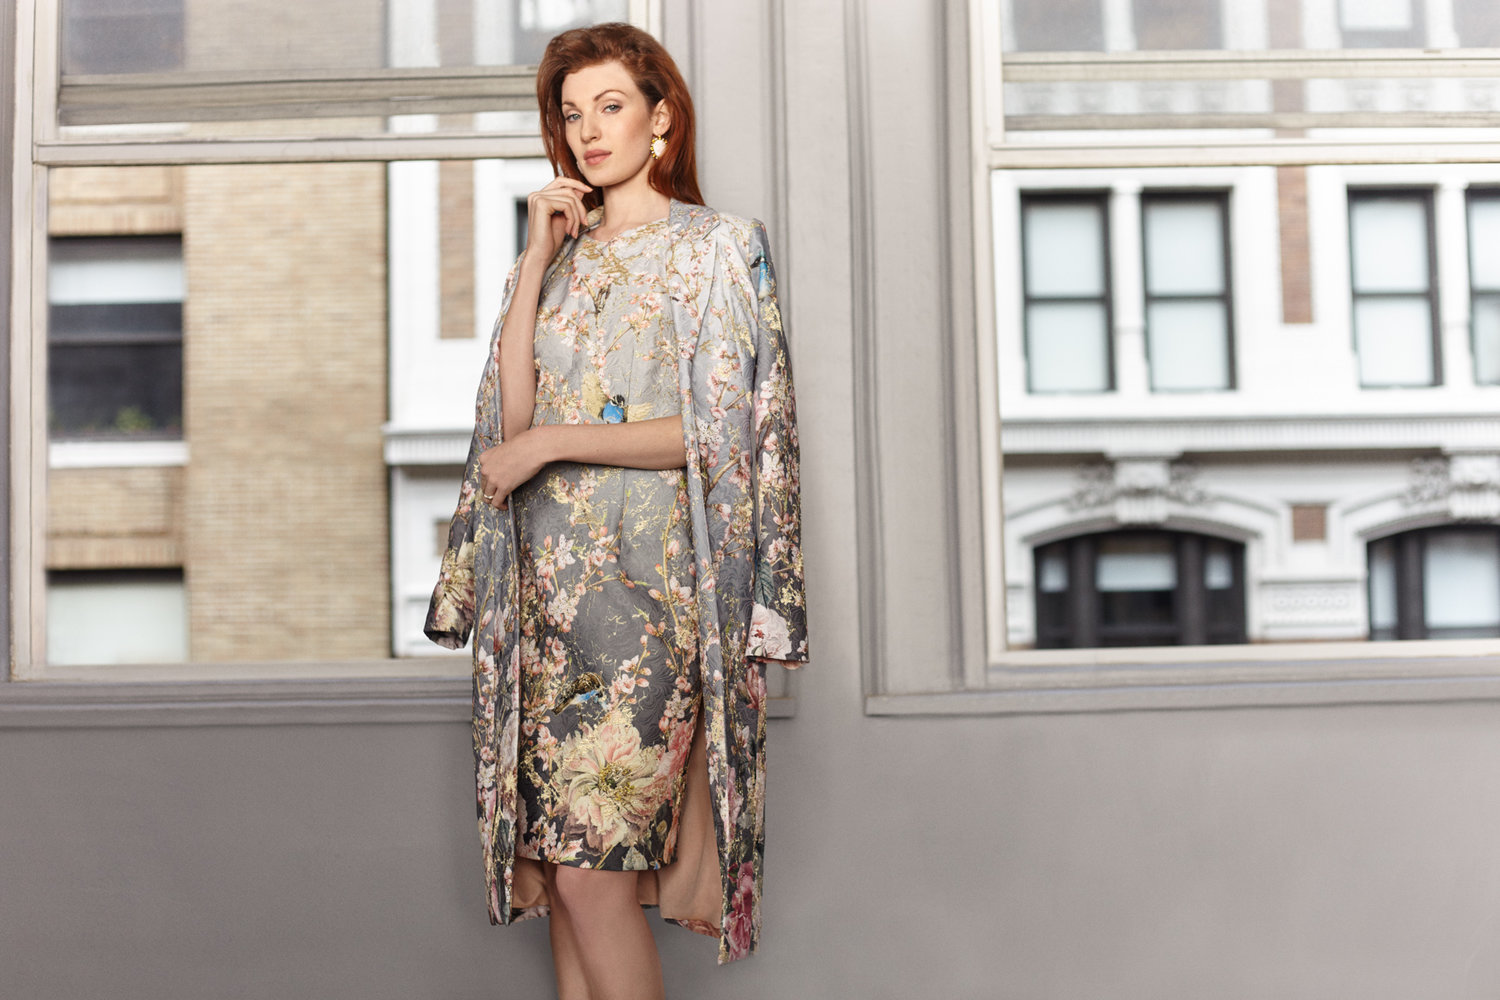 Meet New York designer Cynthia Rose at L'Armoire on Thursday, March 30th  between 11am - 4pm. They are the ONLY store in Connecticut to carry her  elegant ...